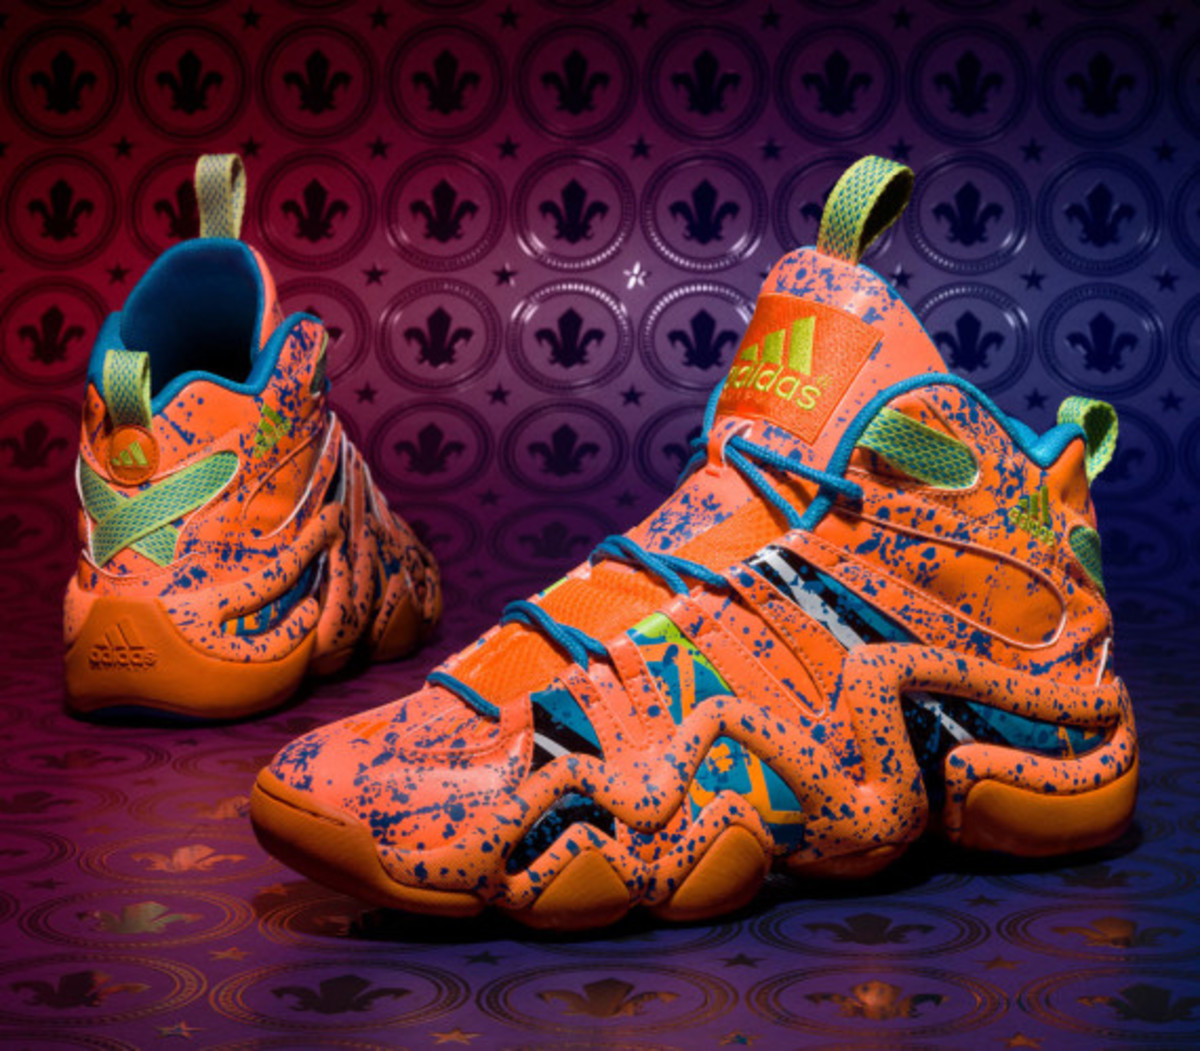 adidas-basketball-crazy-8-nba-all-star-edition-02